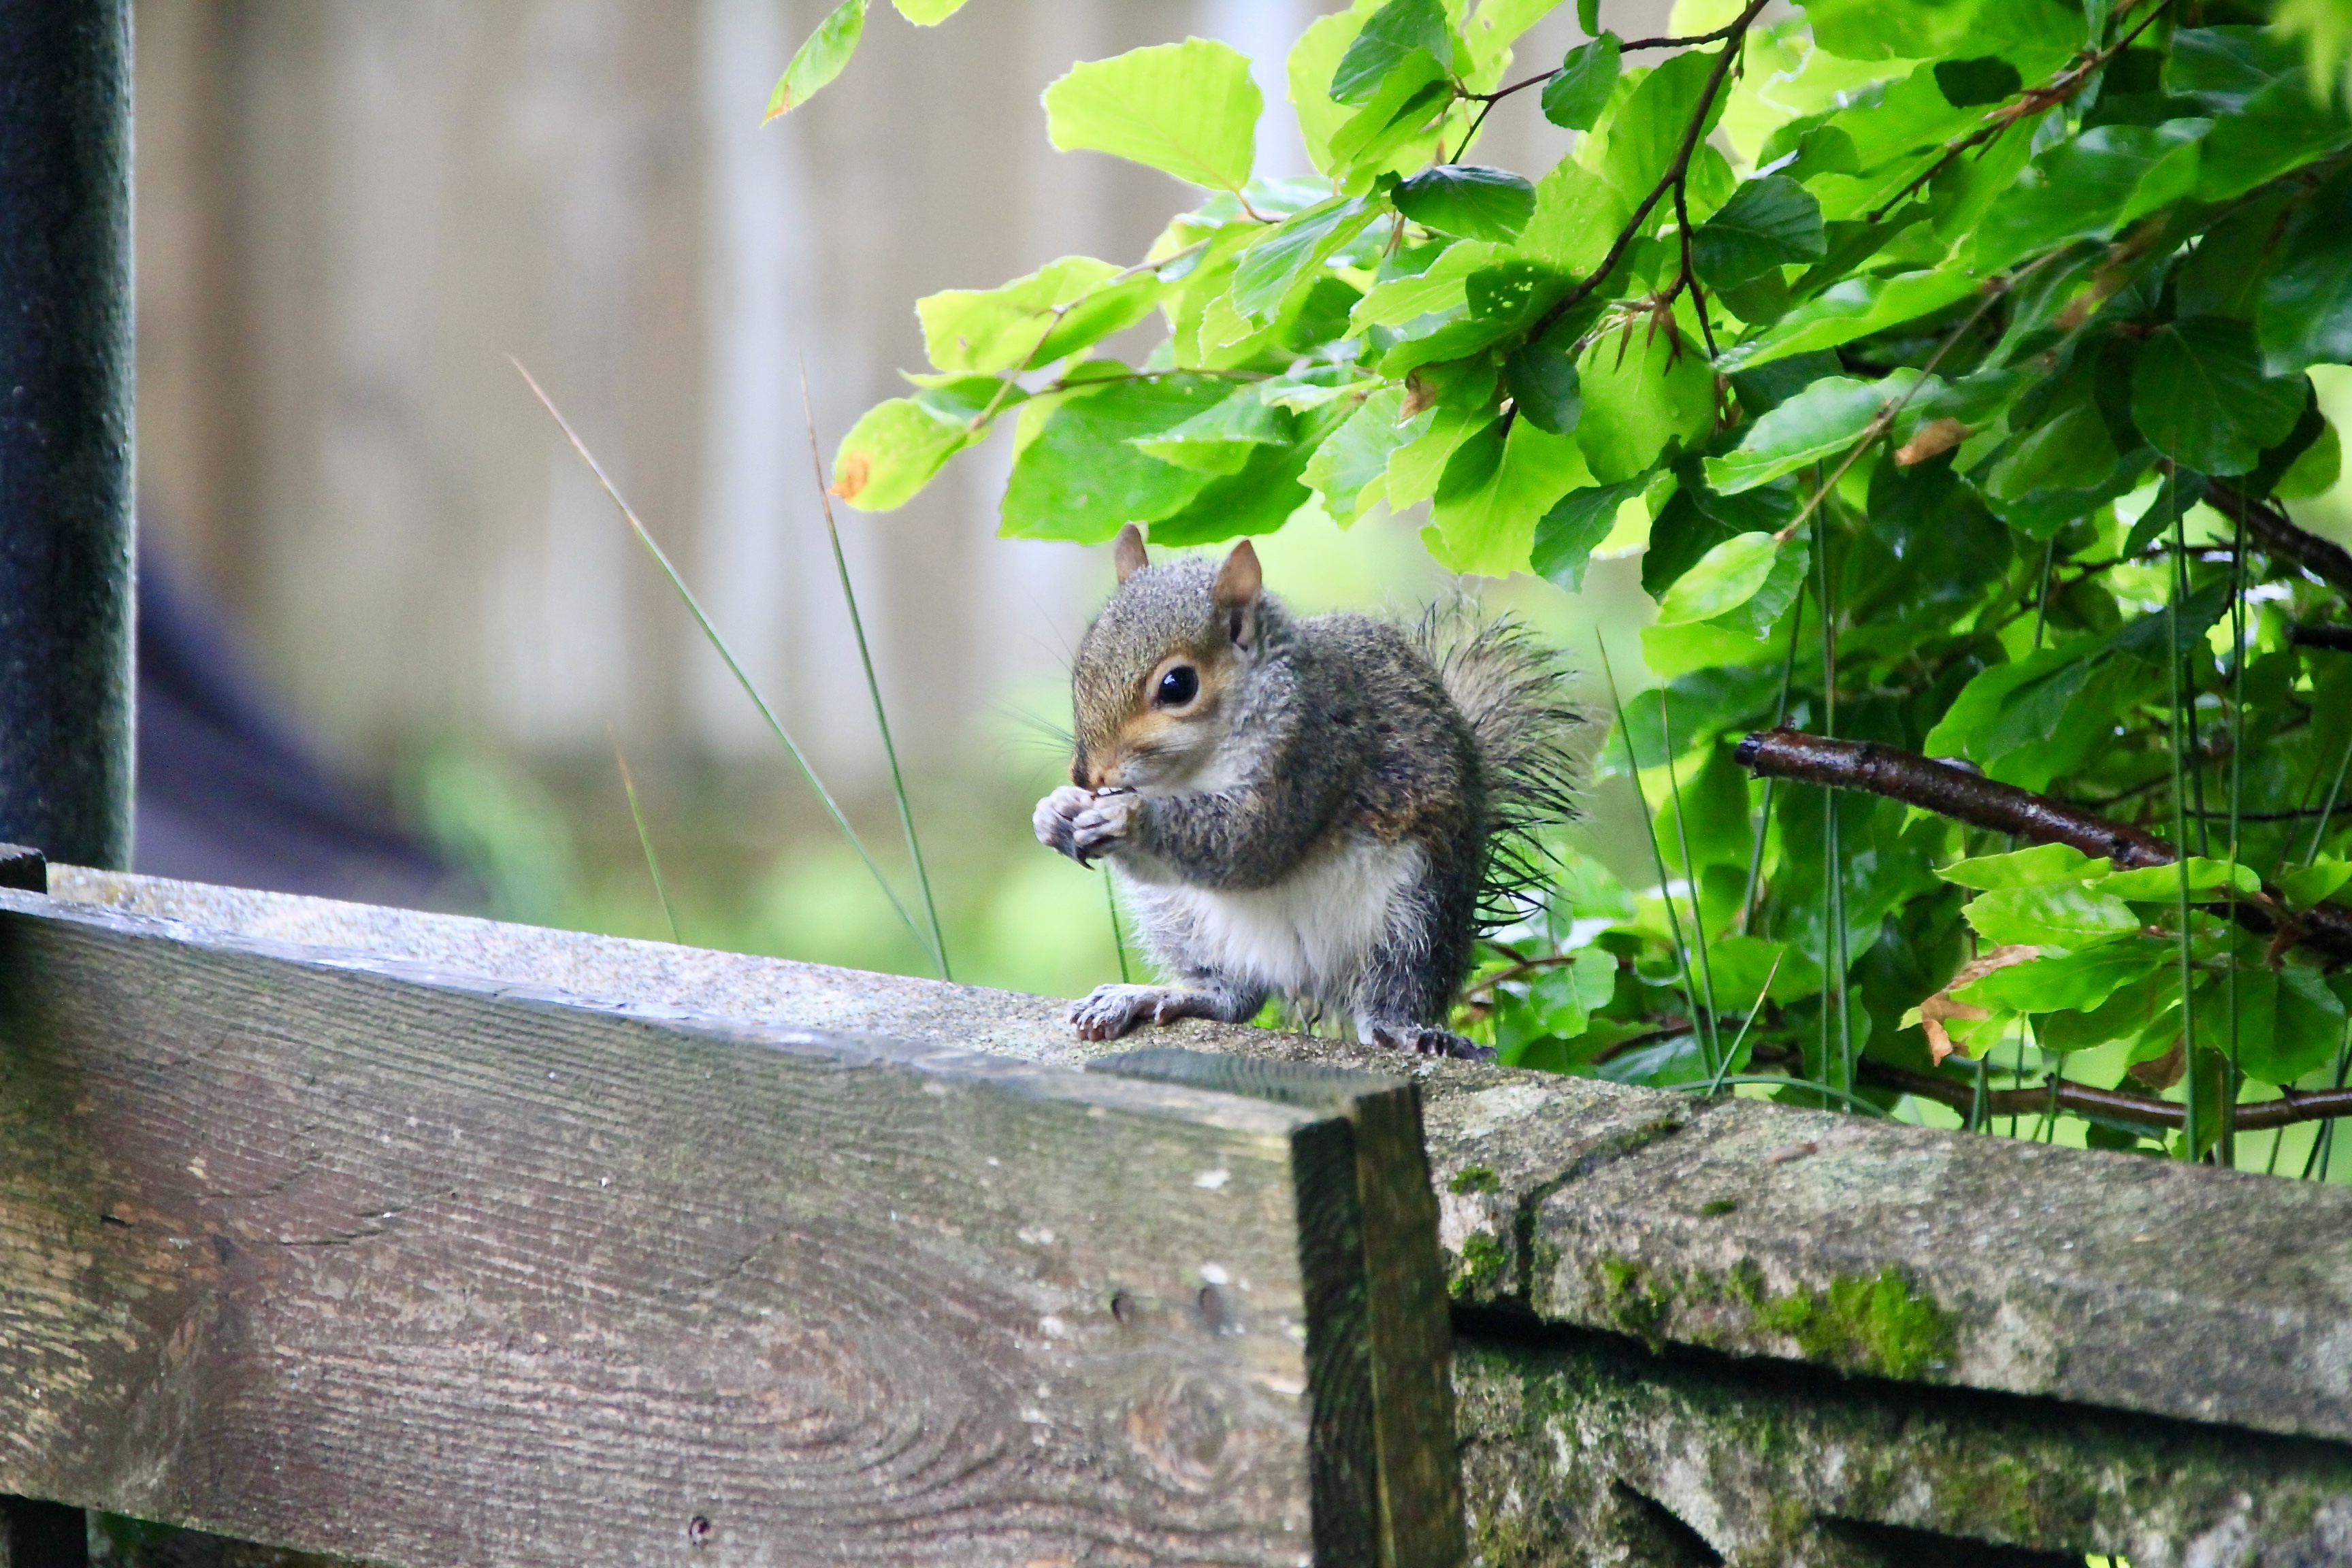 Young squirrel by Jez Braithwaite